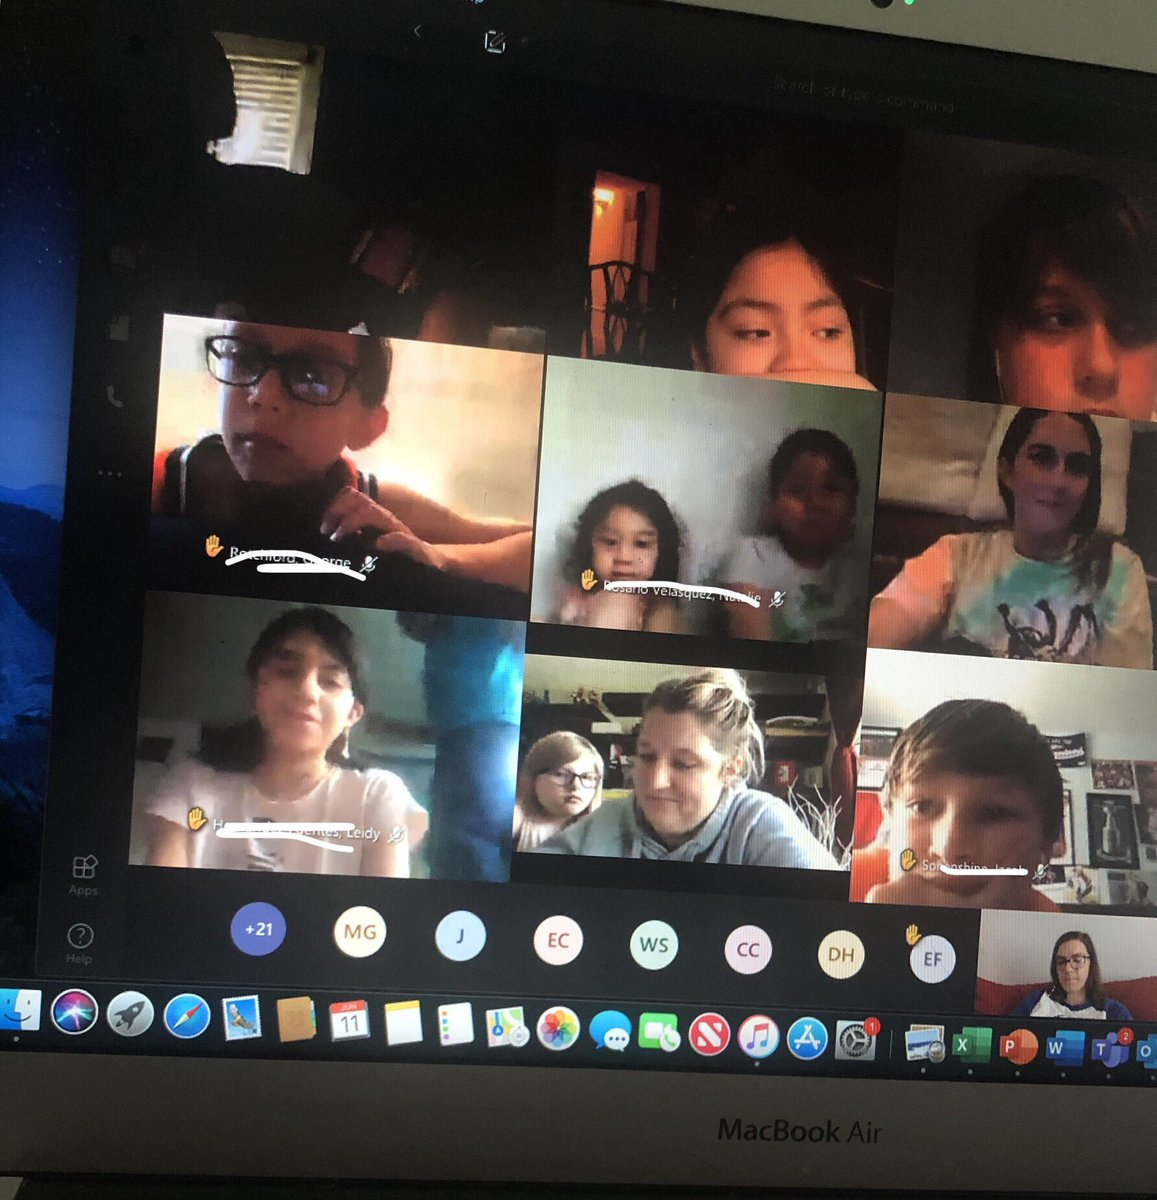 RT <a target='_blank' href='http://twitter.com/KWBHollander'>@KWBHollander</a>: Had a fun end of year lunch bunch with many of the 5th graders! <a target='_blank' href='http://search.twitter.com/search?q=KWBPRIDE'><a target='_blank' href='https://twitter.com/hashtag/KWBPRIDE?src=hash'>#KWBPRIDE</a></a> <a target='_blank' href='https://t.co/GPoSY3RiBD'>https://t.co/GPoSY3RiBD</a>